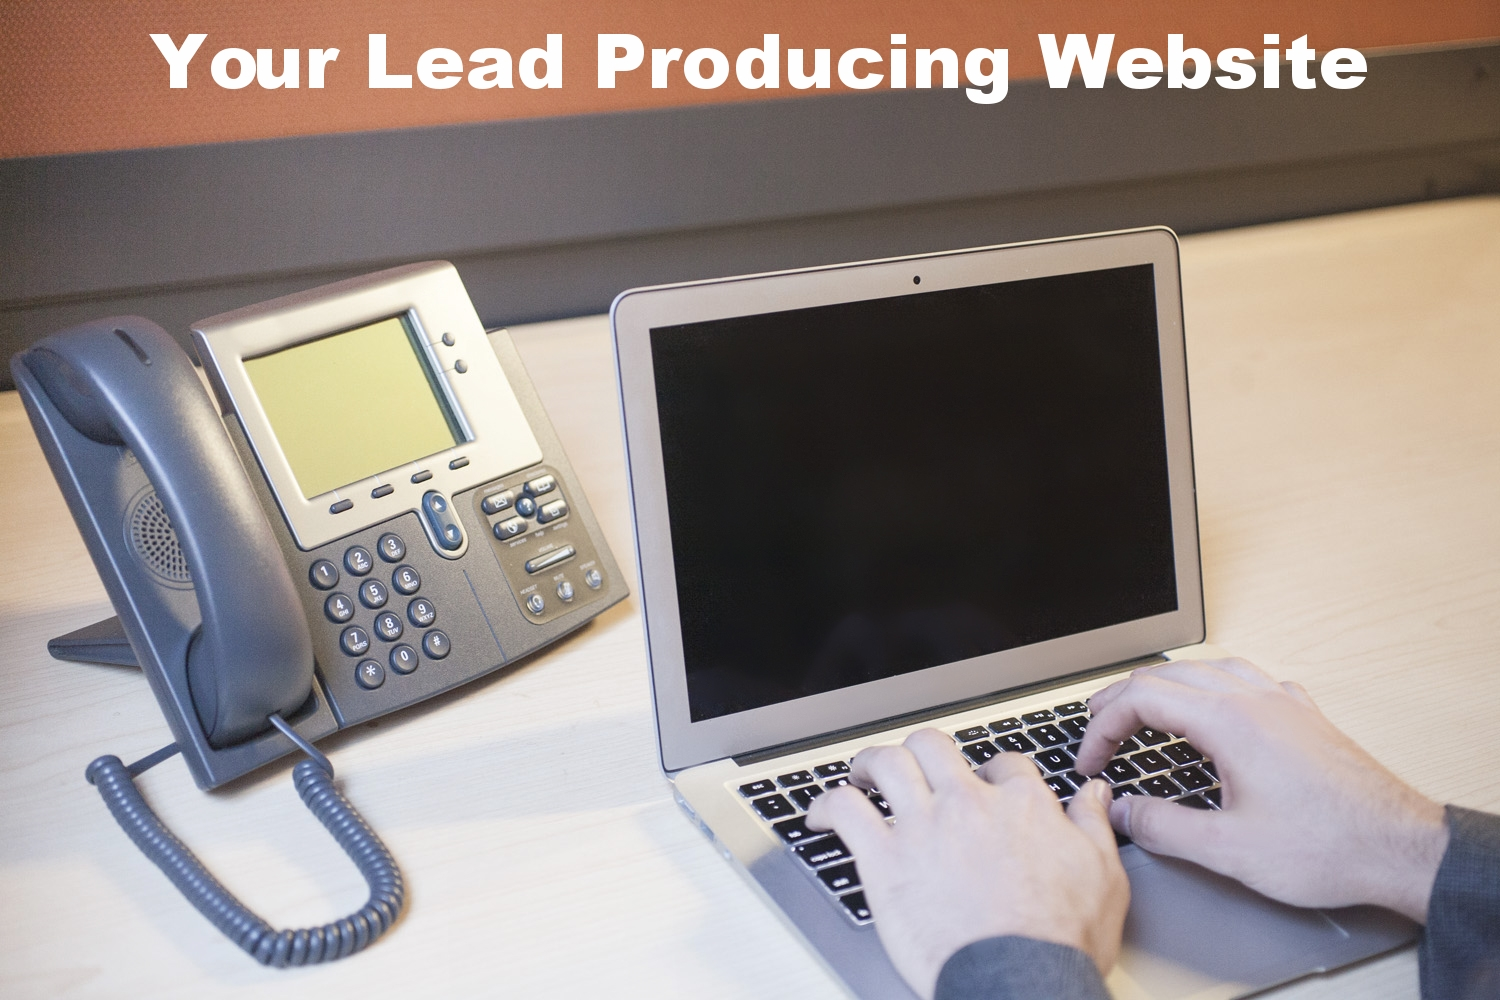 4 Elements of A Lead Producing Website